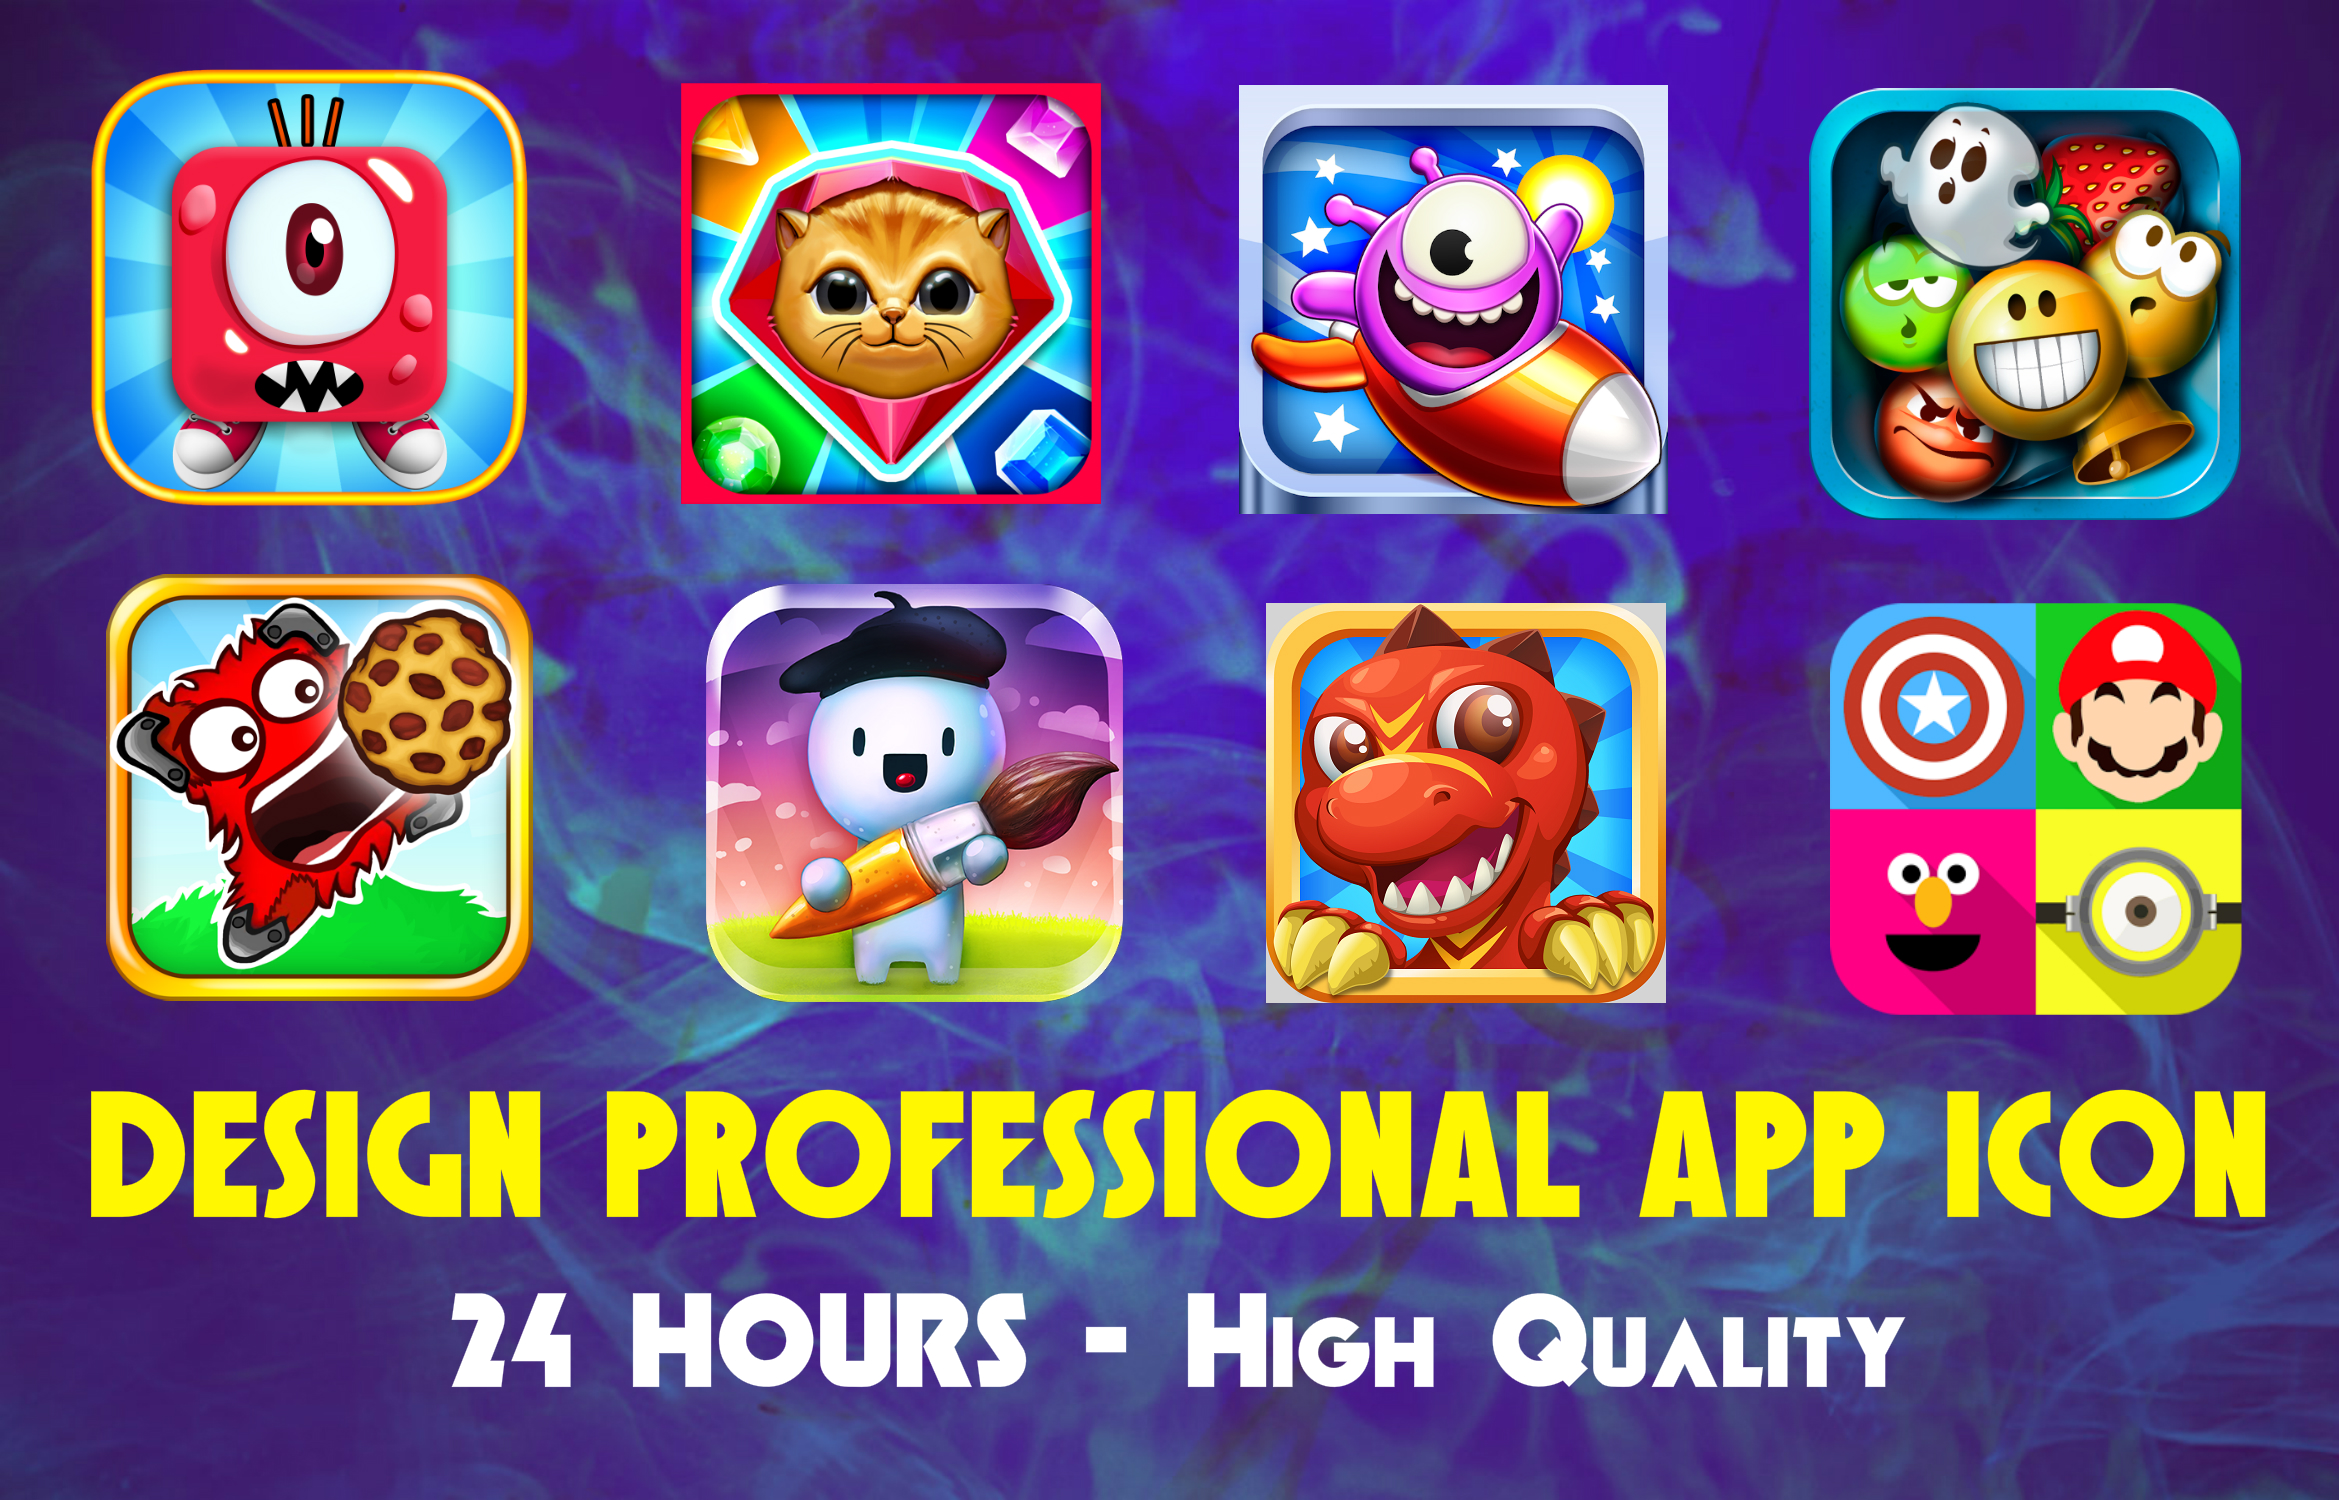 I will design Professional app icon in 24hour